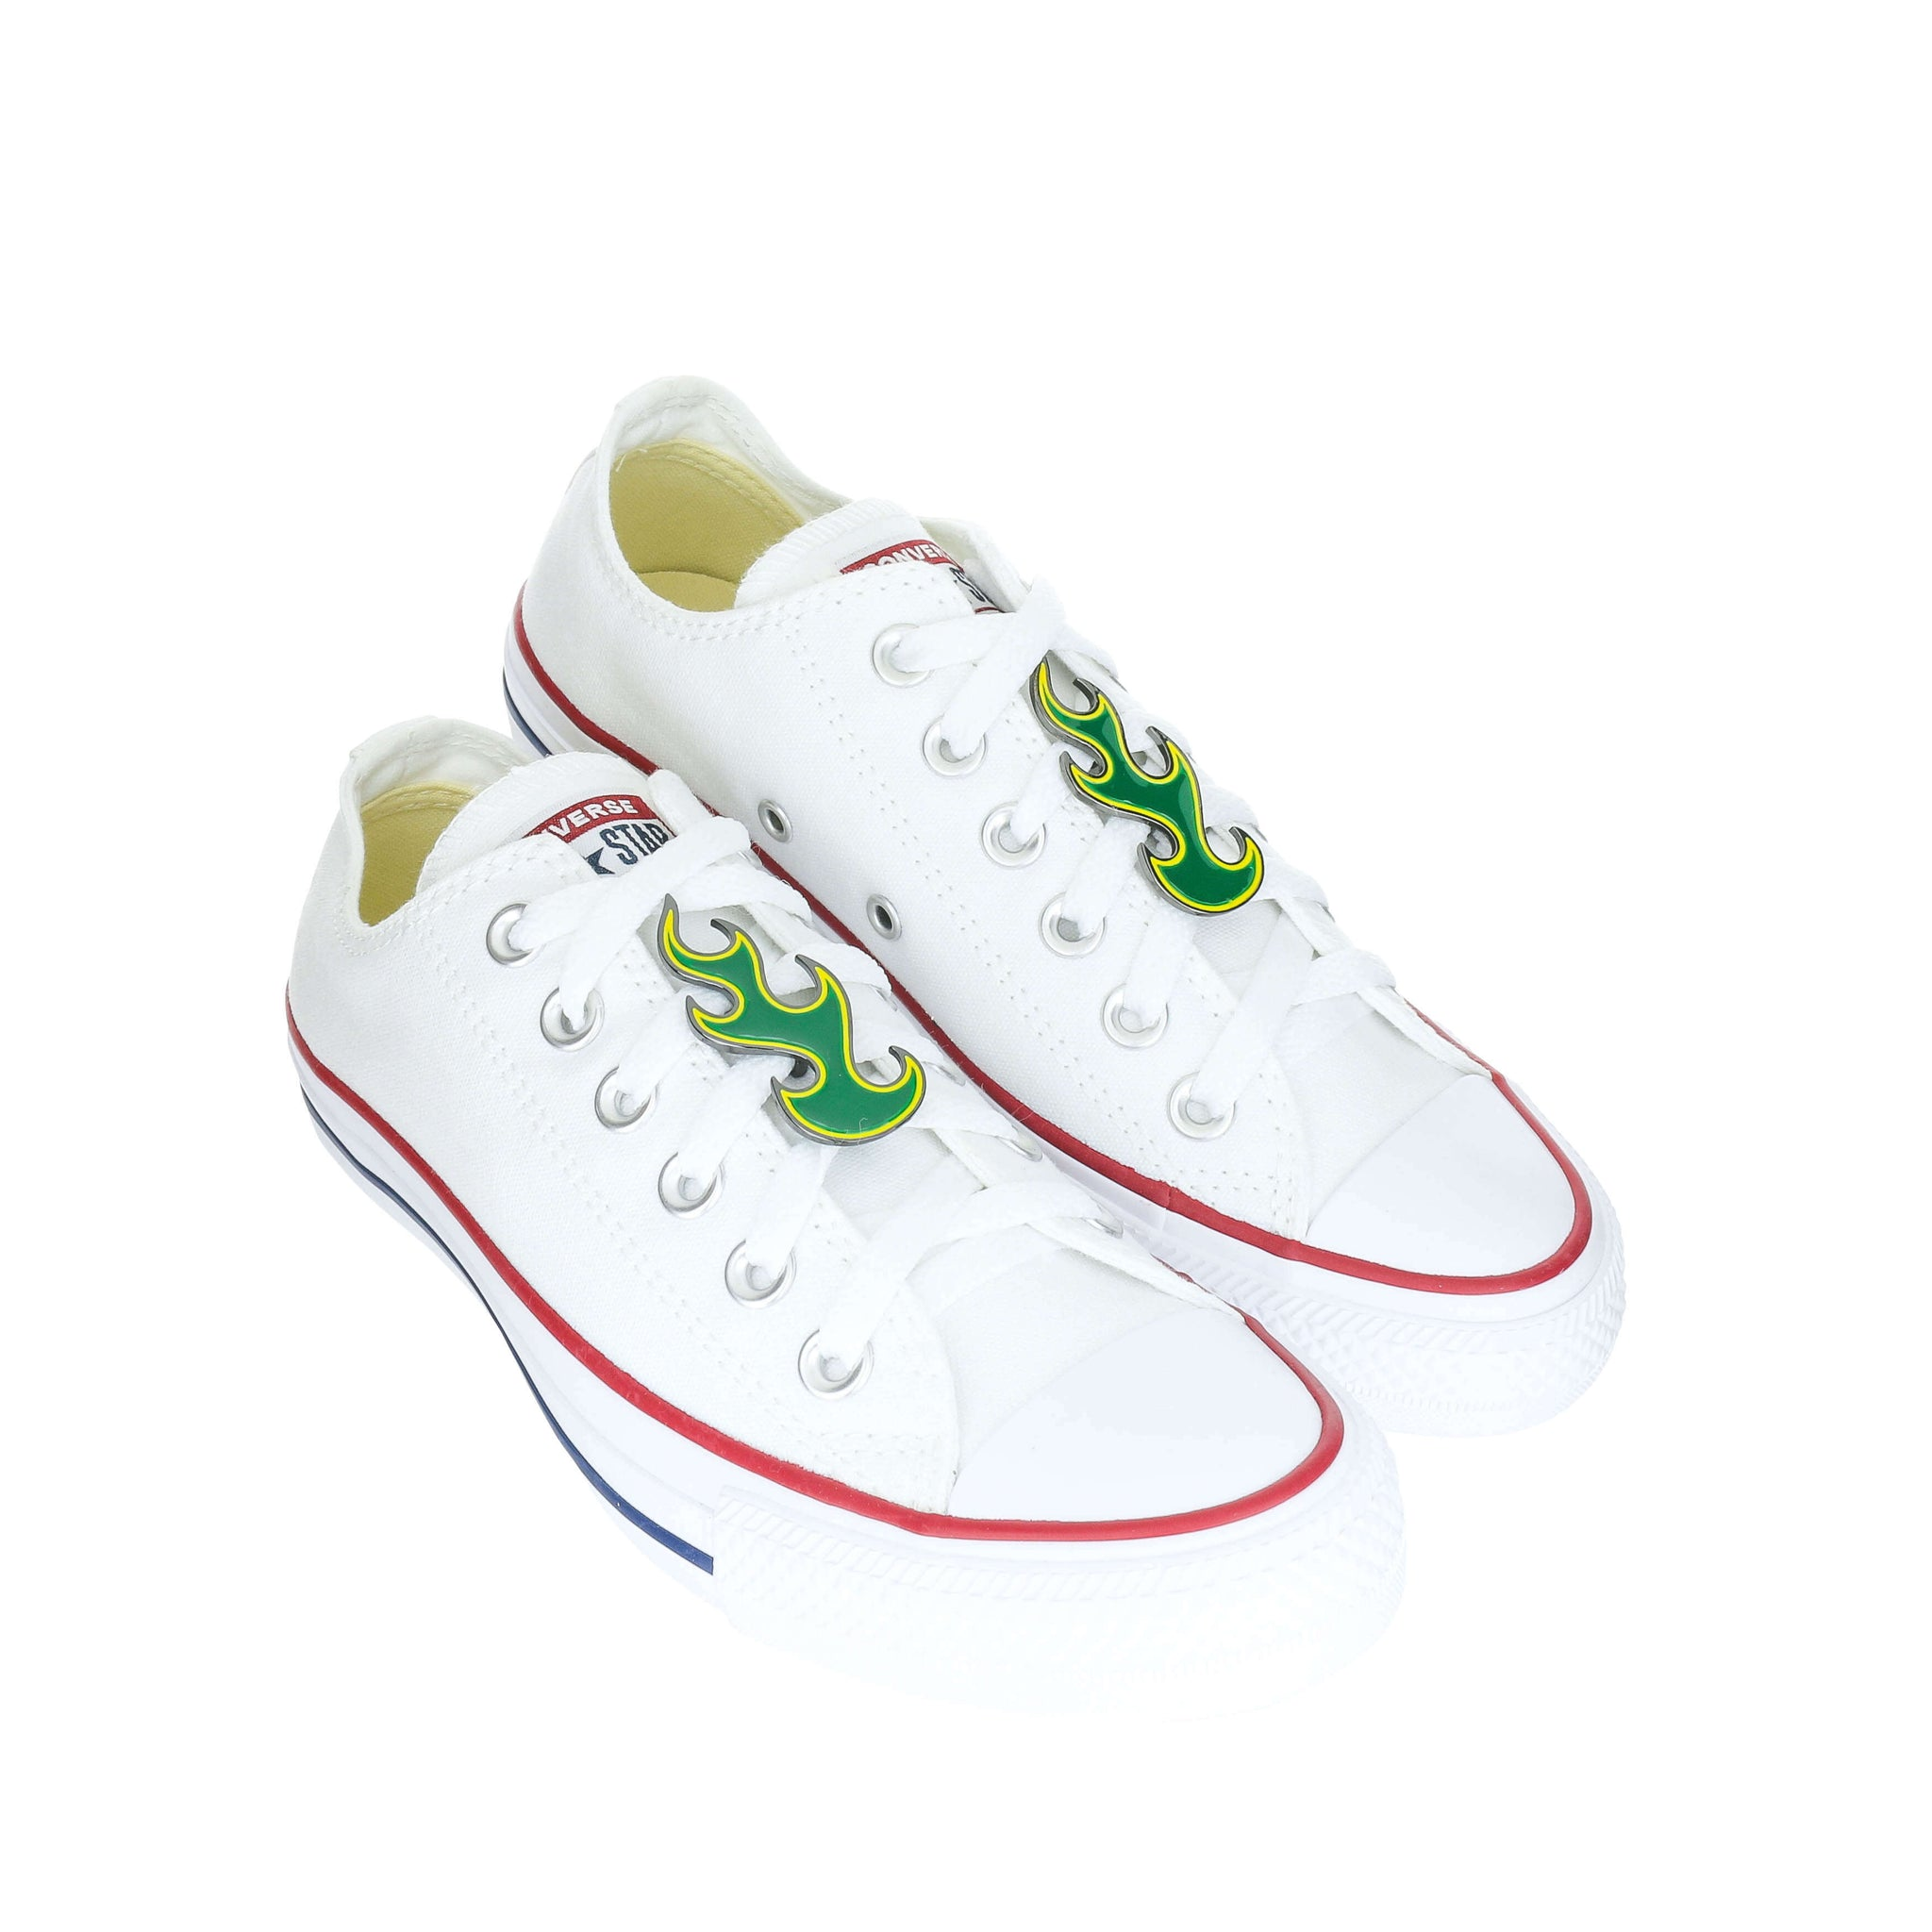 White Custom Converse Chuck Taylor All Star Low Top Sneaker With Green Flame Set (removable charms)